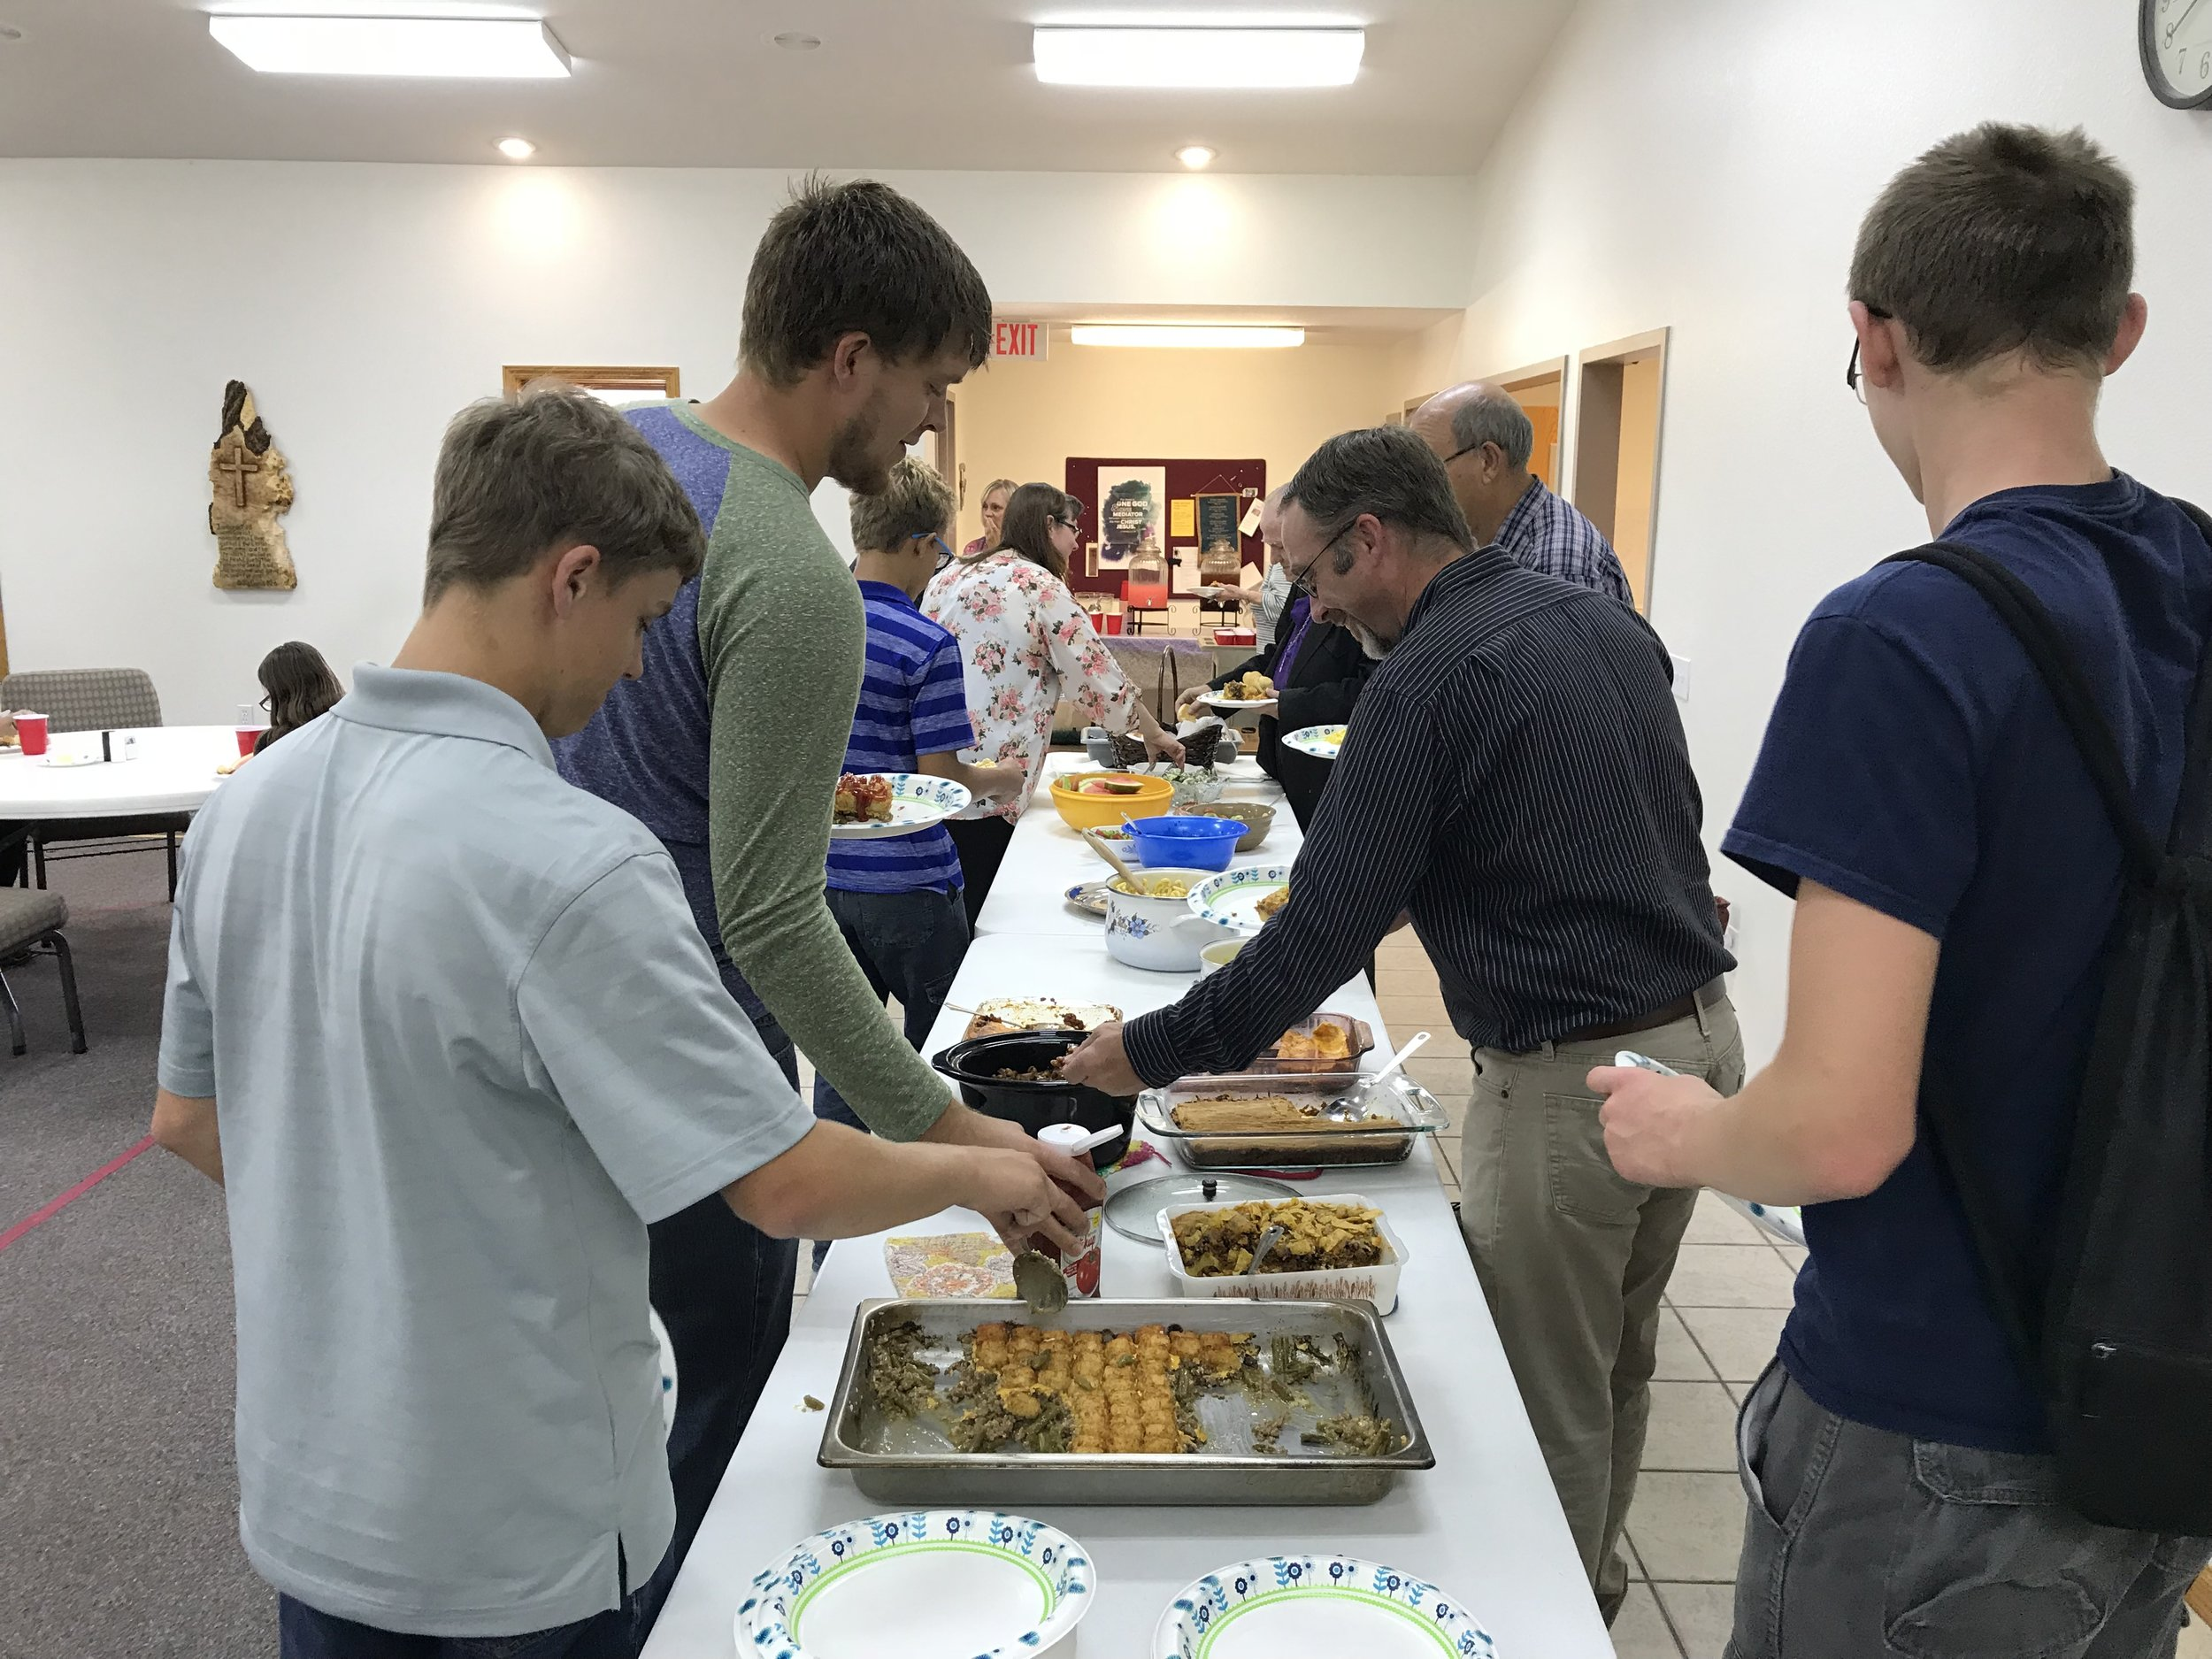 After the church service, we were invited to a potluck lunch. What a blessing to get to know these dear people and fill our bellies before our afternoon ride. (We even had some food to contribute to the potluck!) 😊